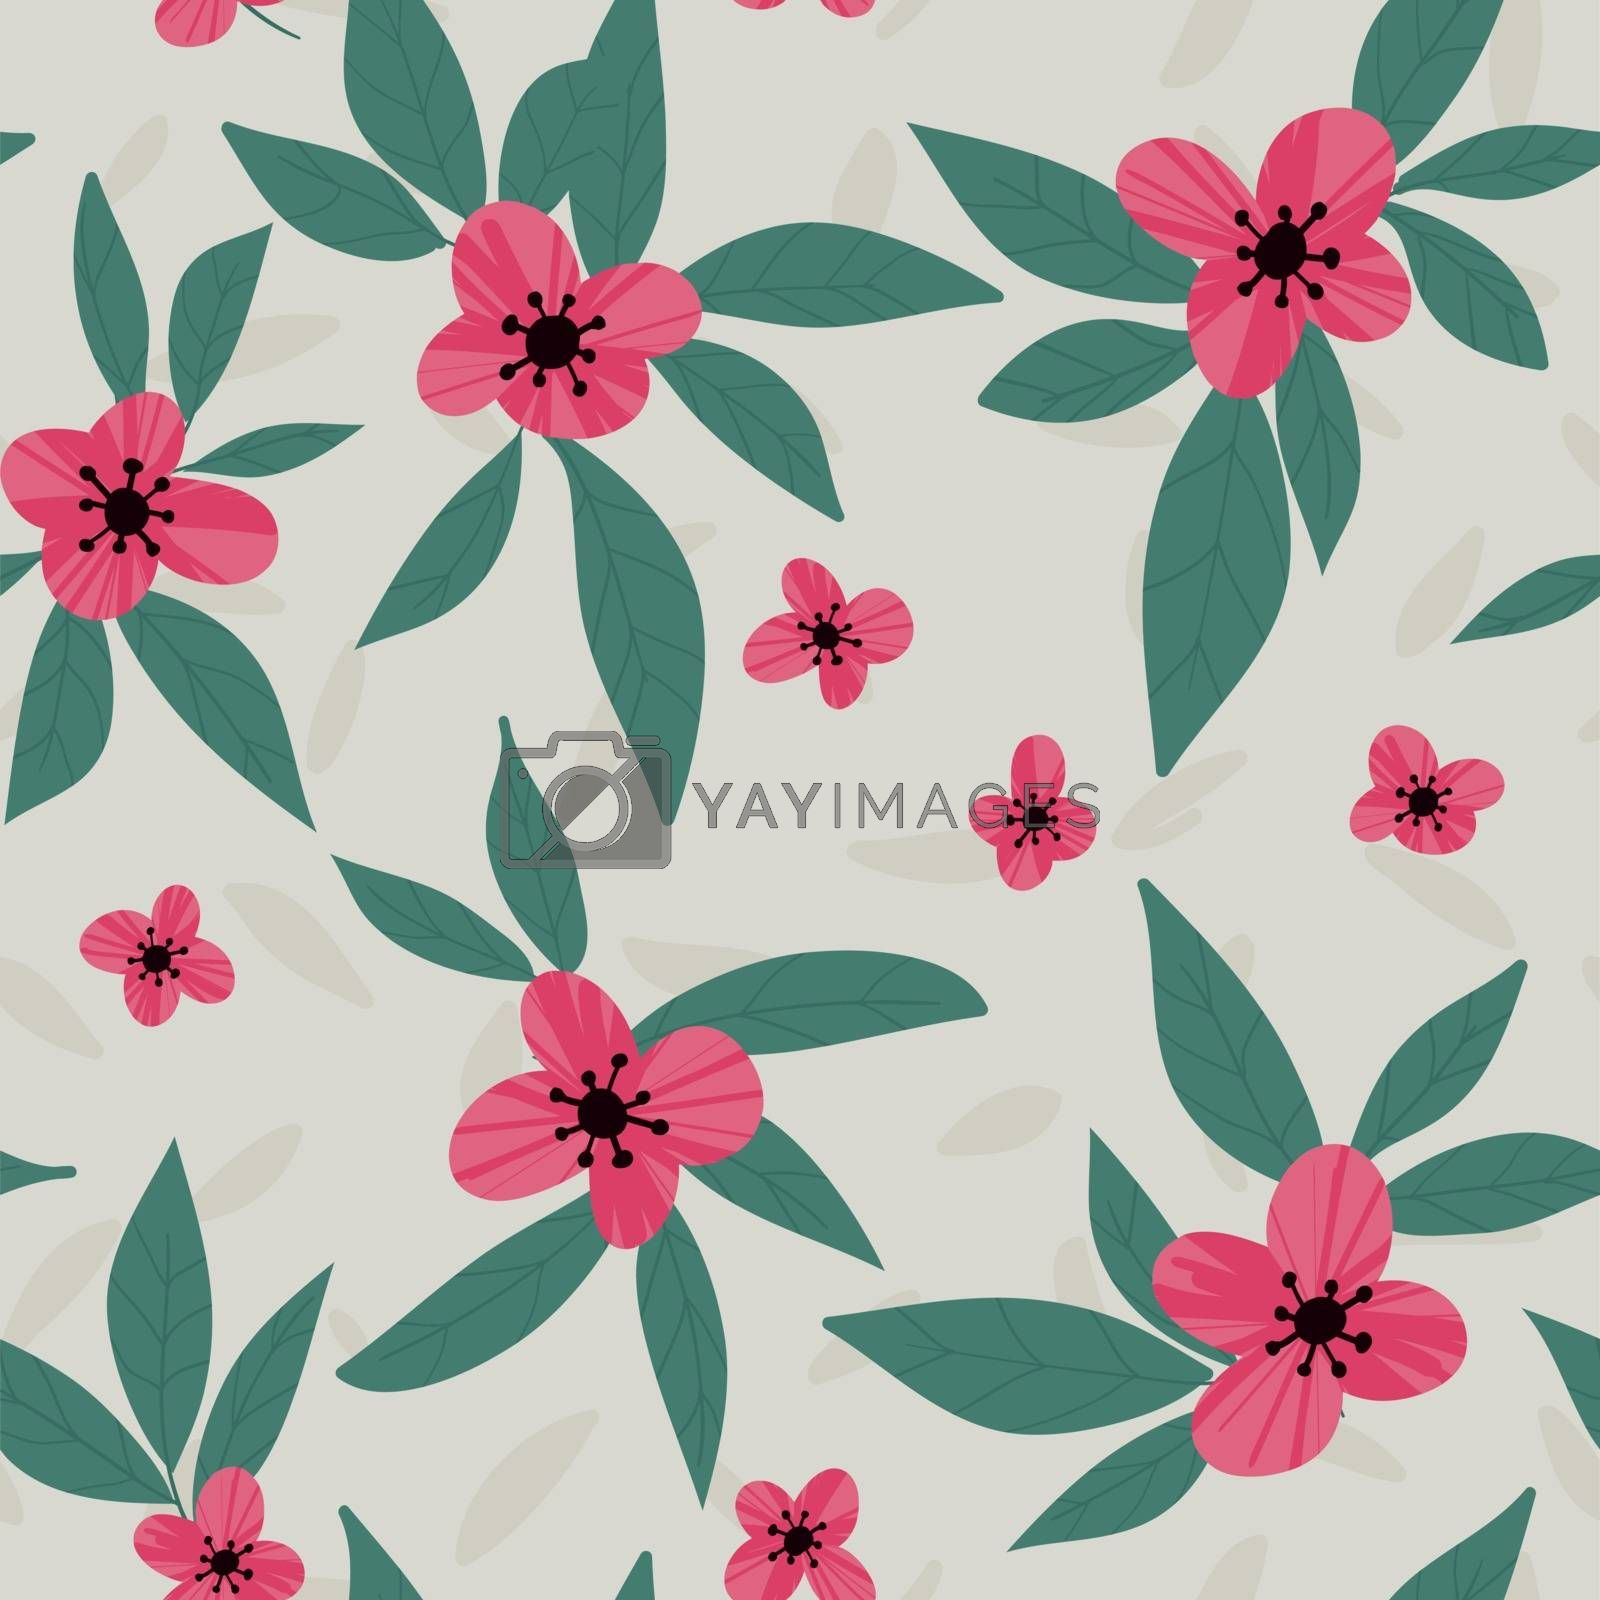 Floral vector pattern. Seamless doodle flowers. by LittleCuckoo